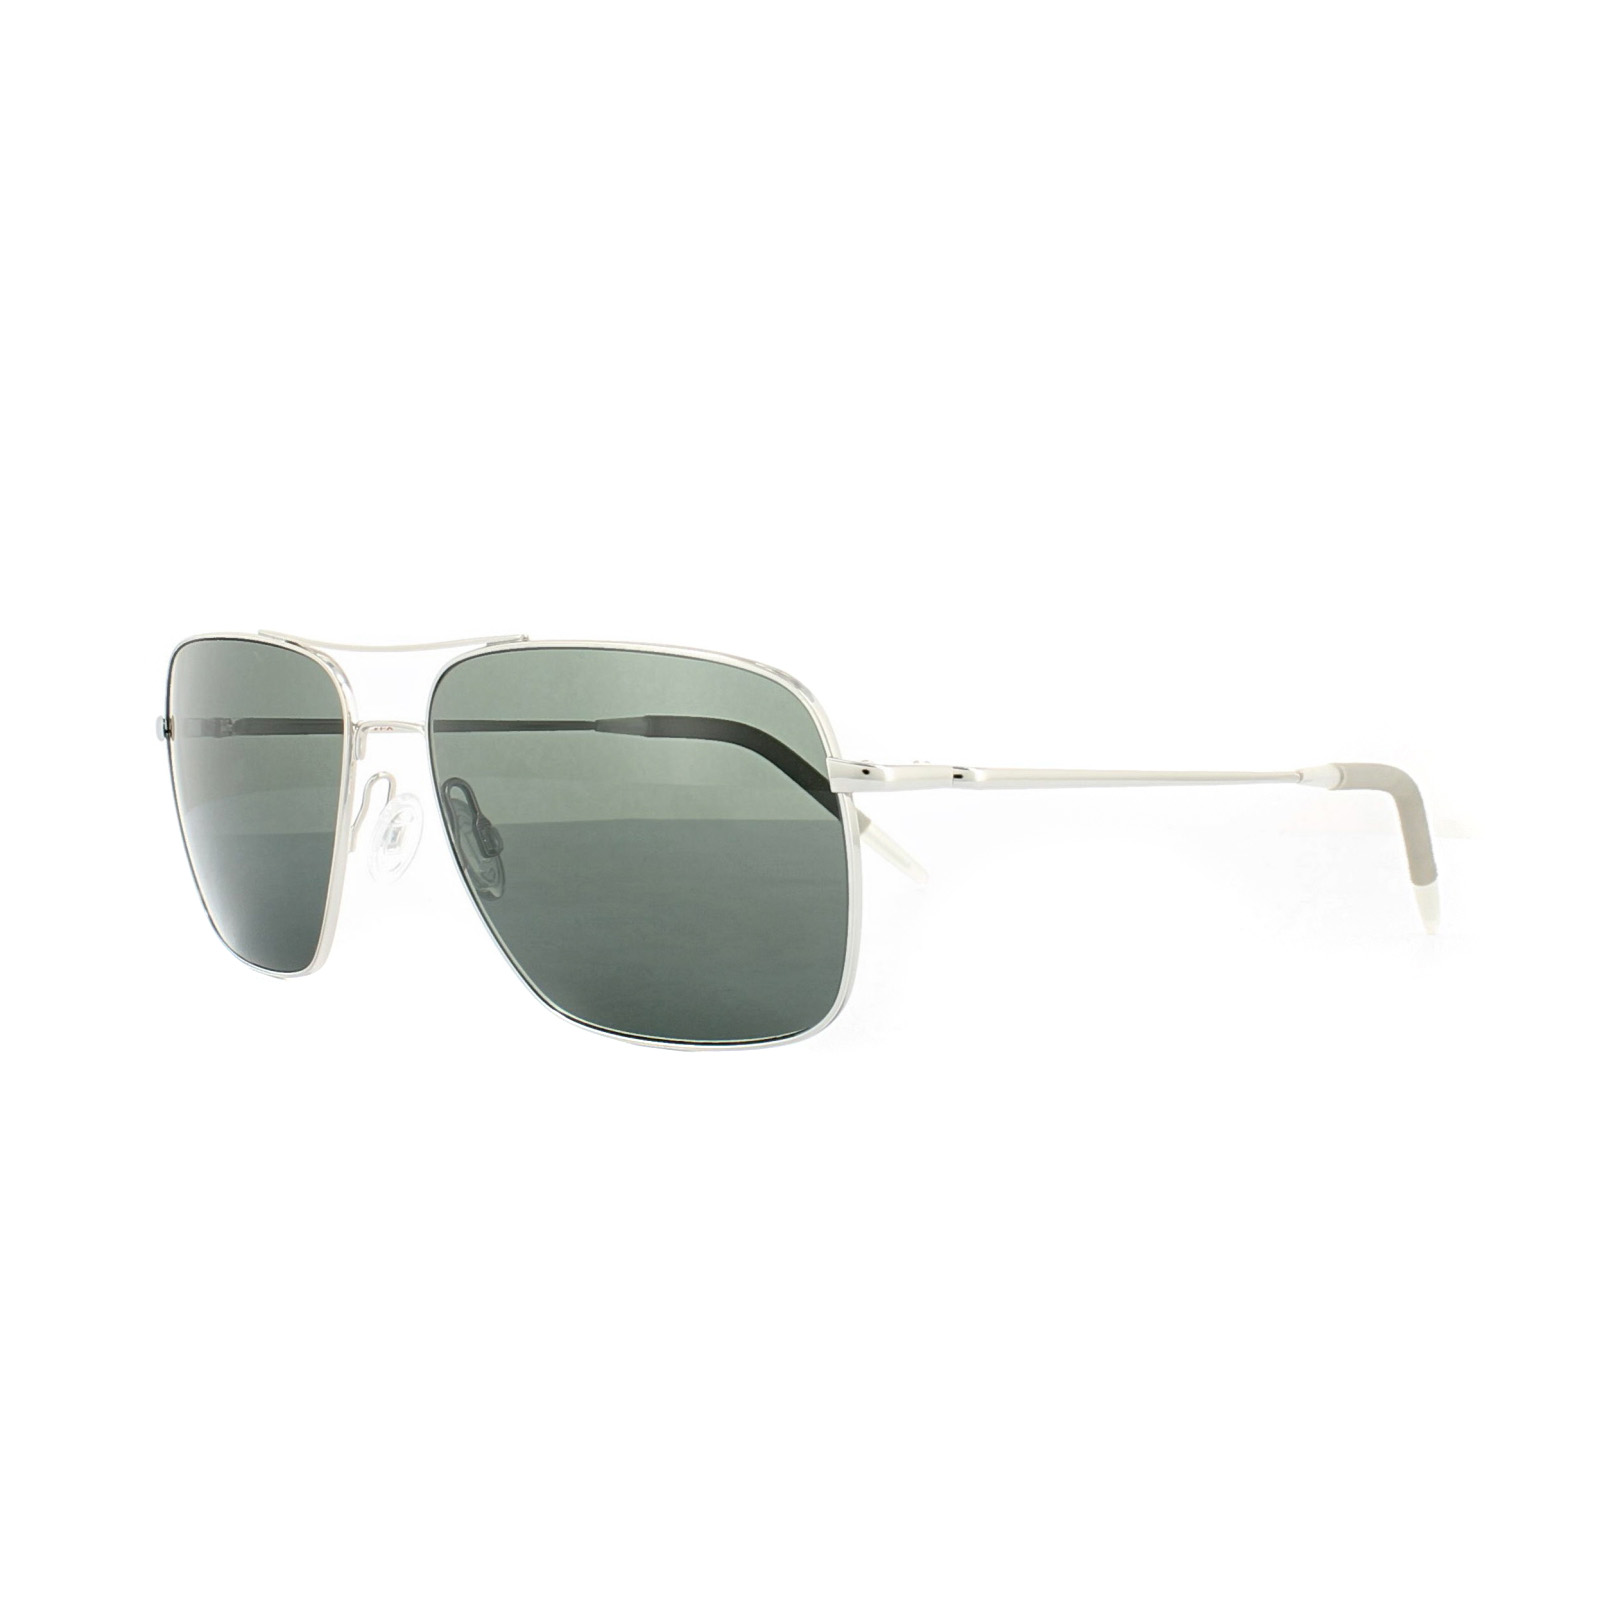 feeed2b33b8 Sentinel Oliver Peoples Sunglasses Clifton 1150 5036/P2 Silver Midnight Exp  VFX Polarized